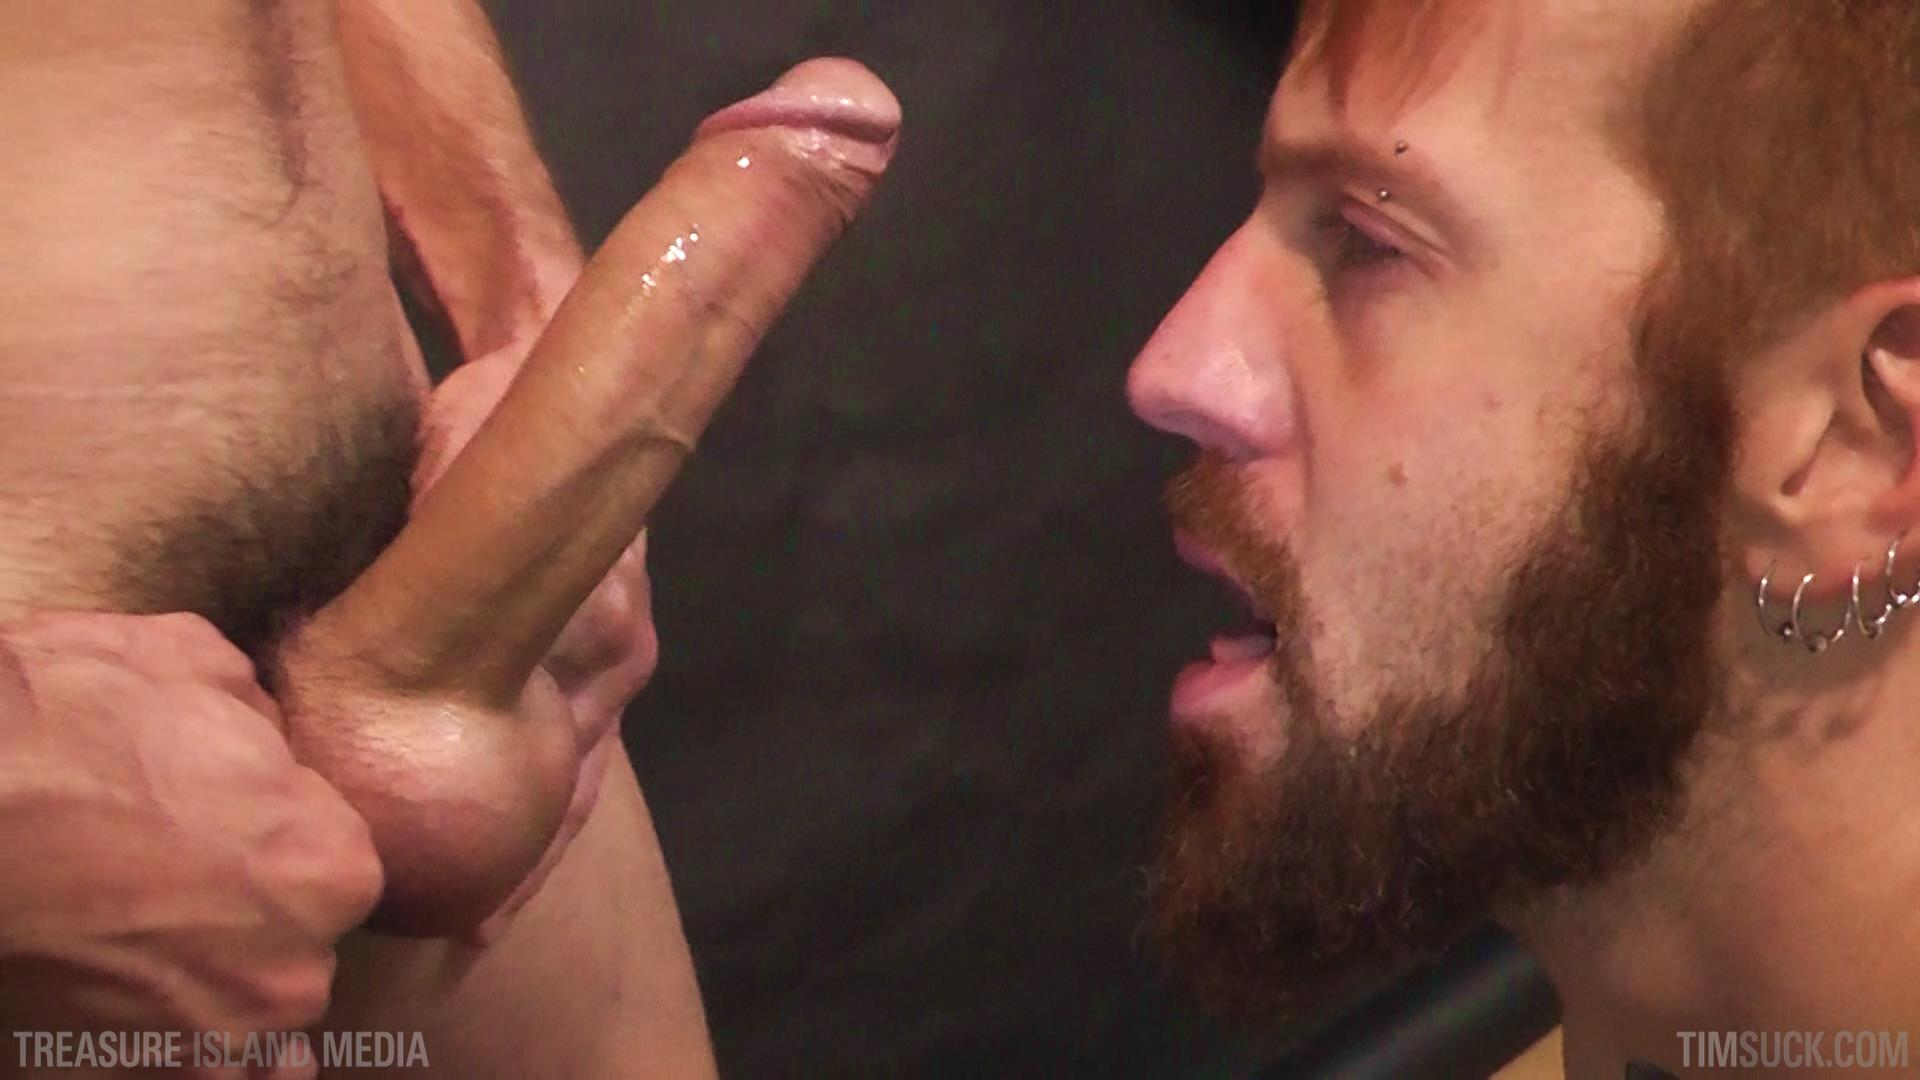 Treasure island media free gay porn